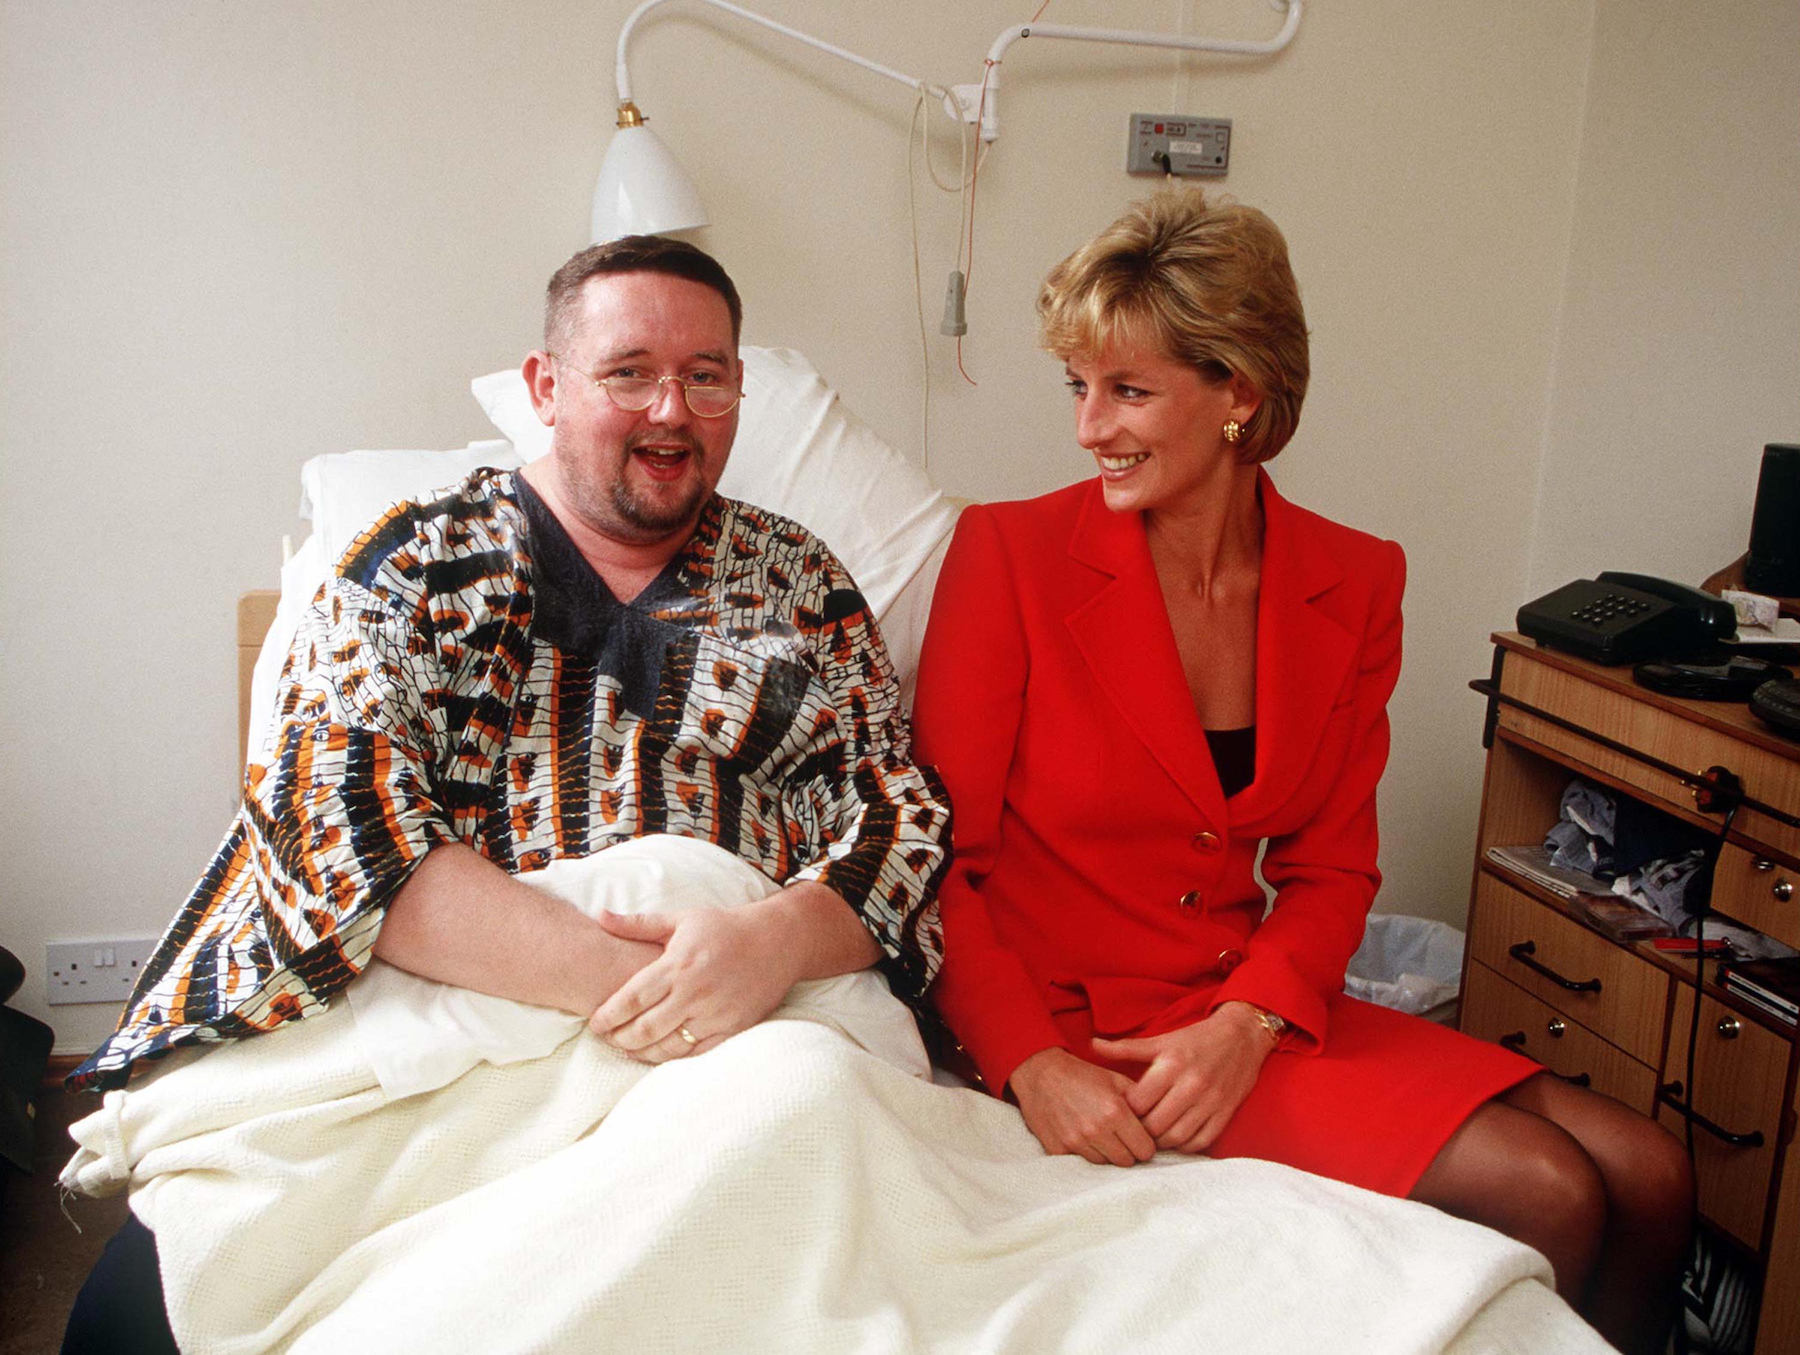 Princess Diana - Princess Diana visiting a patient at the London Lighthouse, a centre for people affected by HIV and AIDS, in London, October 1996.